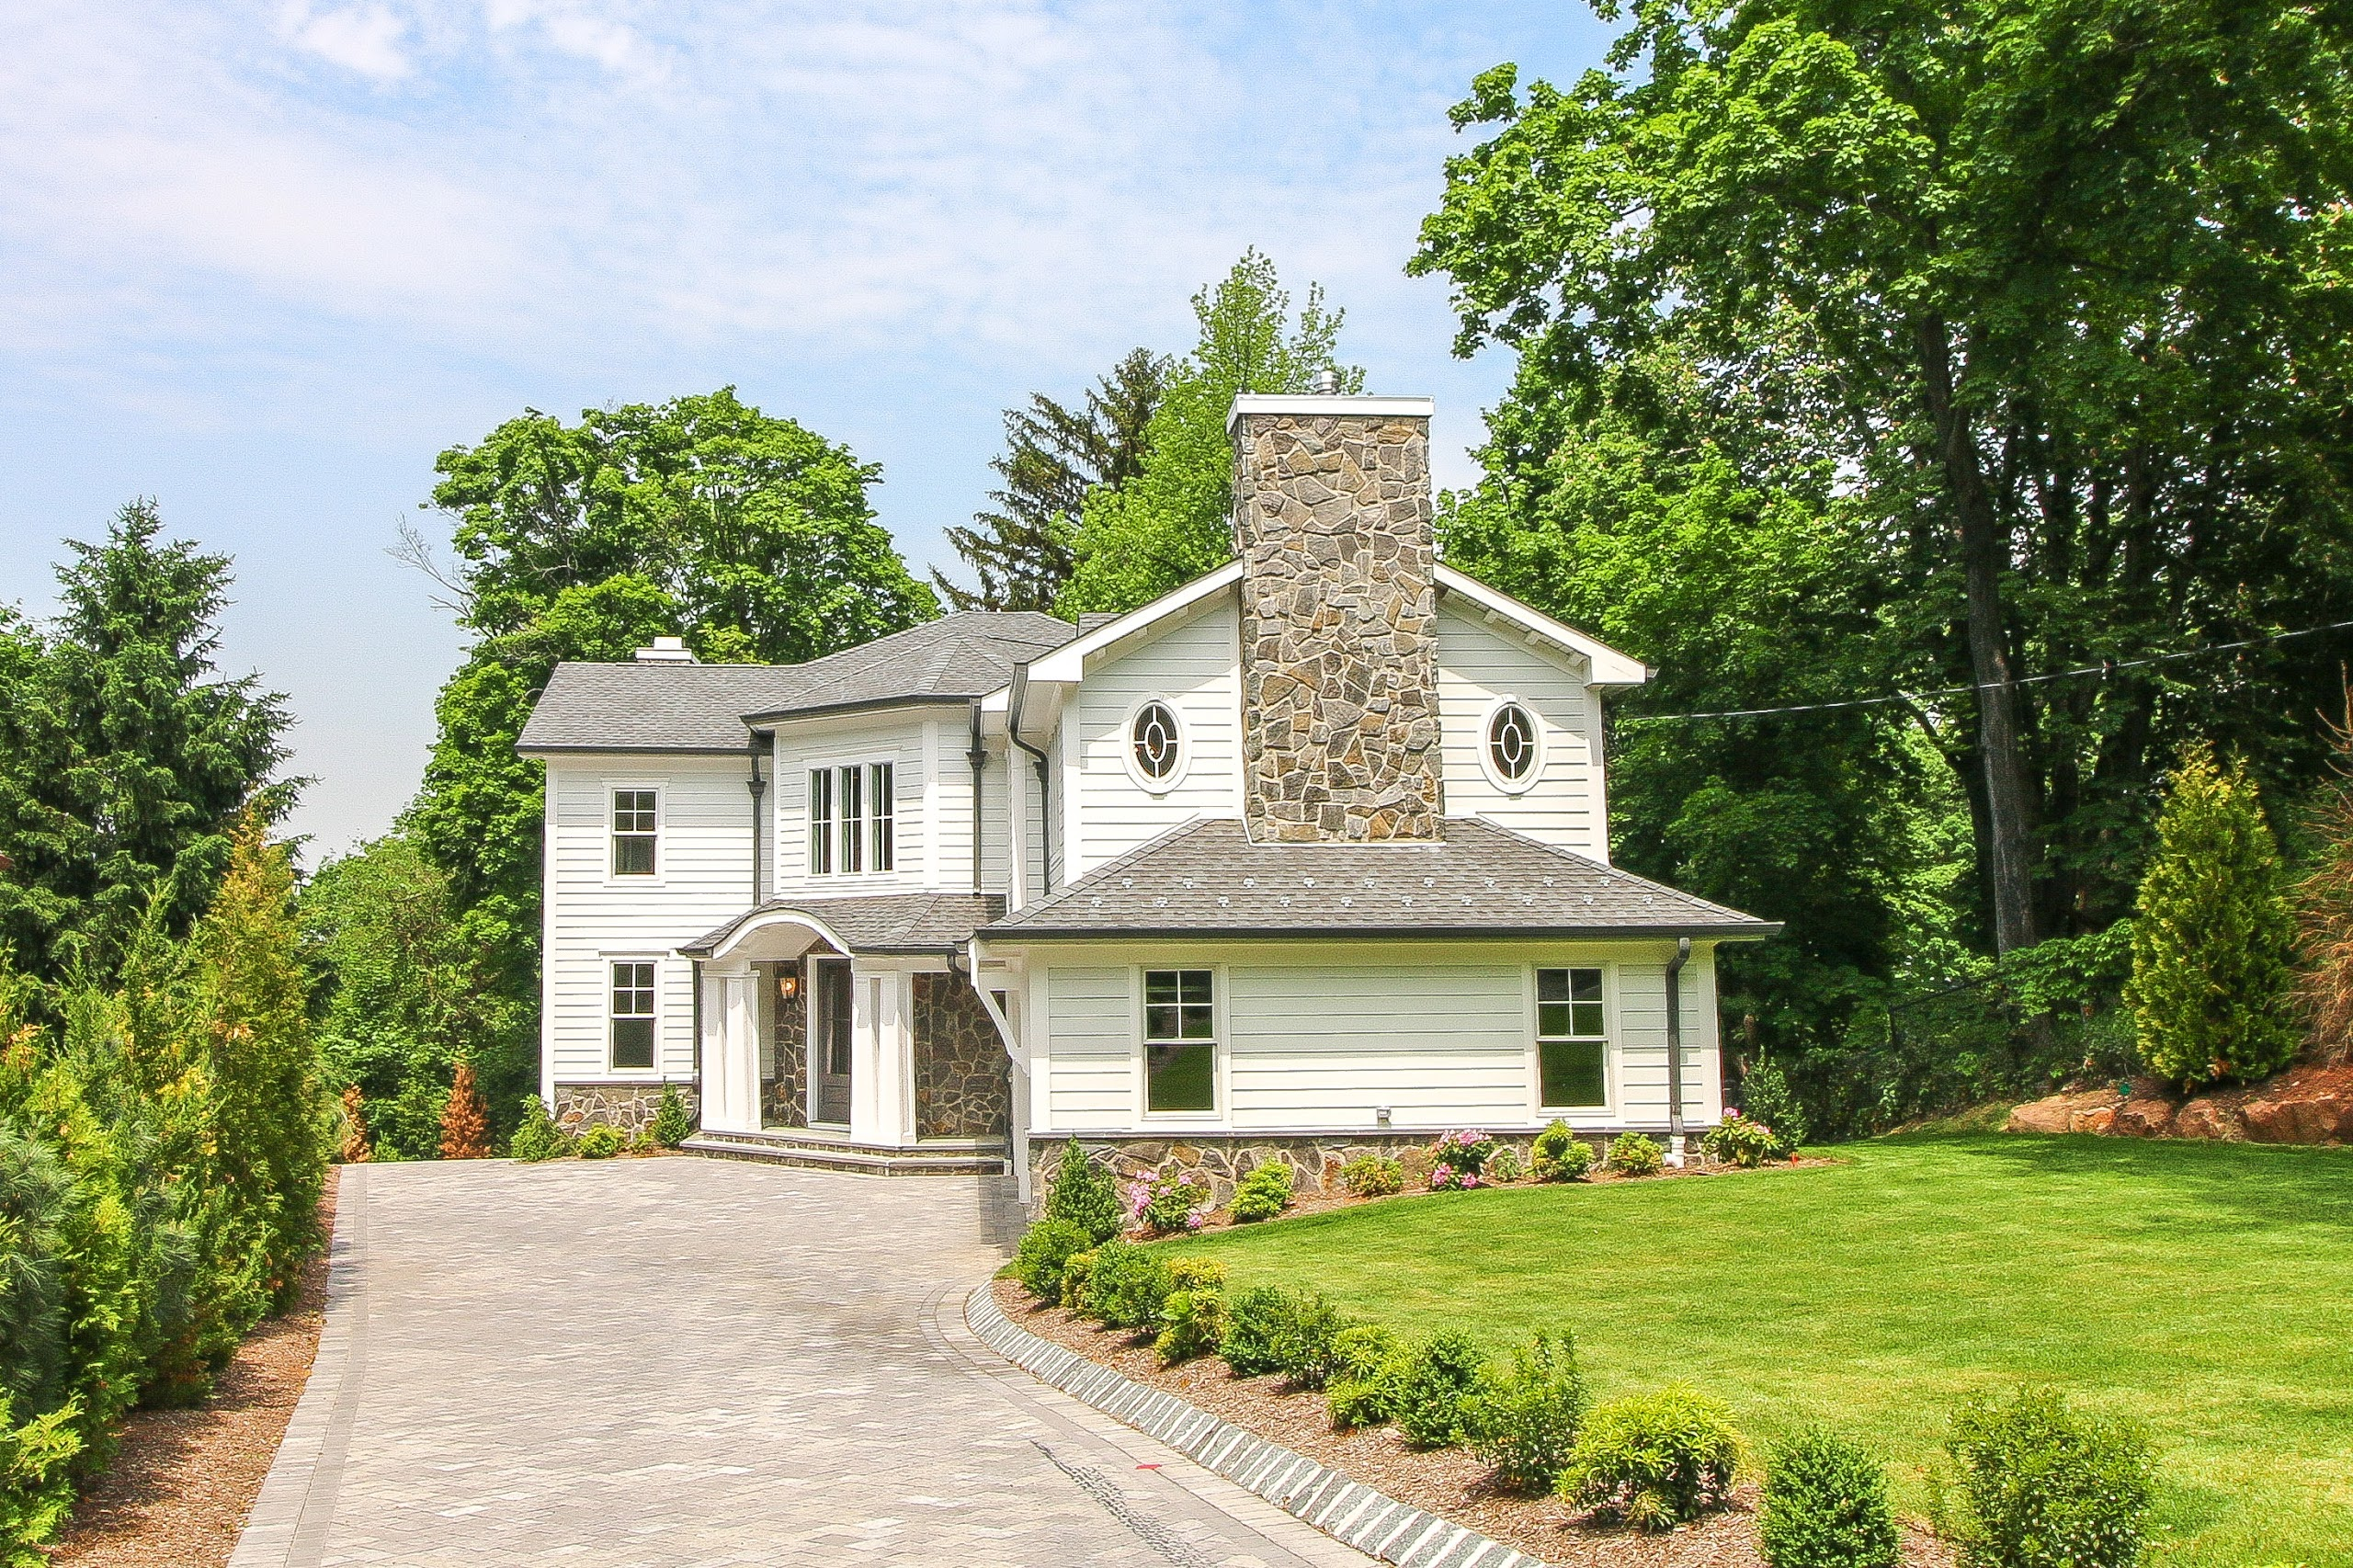 Single Family Home for Sale at Englewoods Prestigious East Hill 166 Winthrop Place Englewood, New Jersey 07631 United States